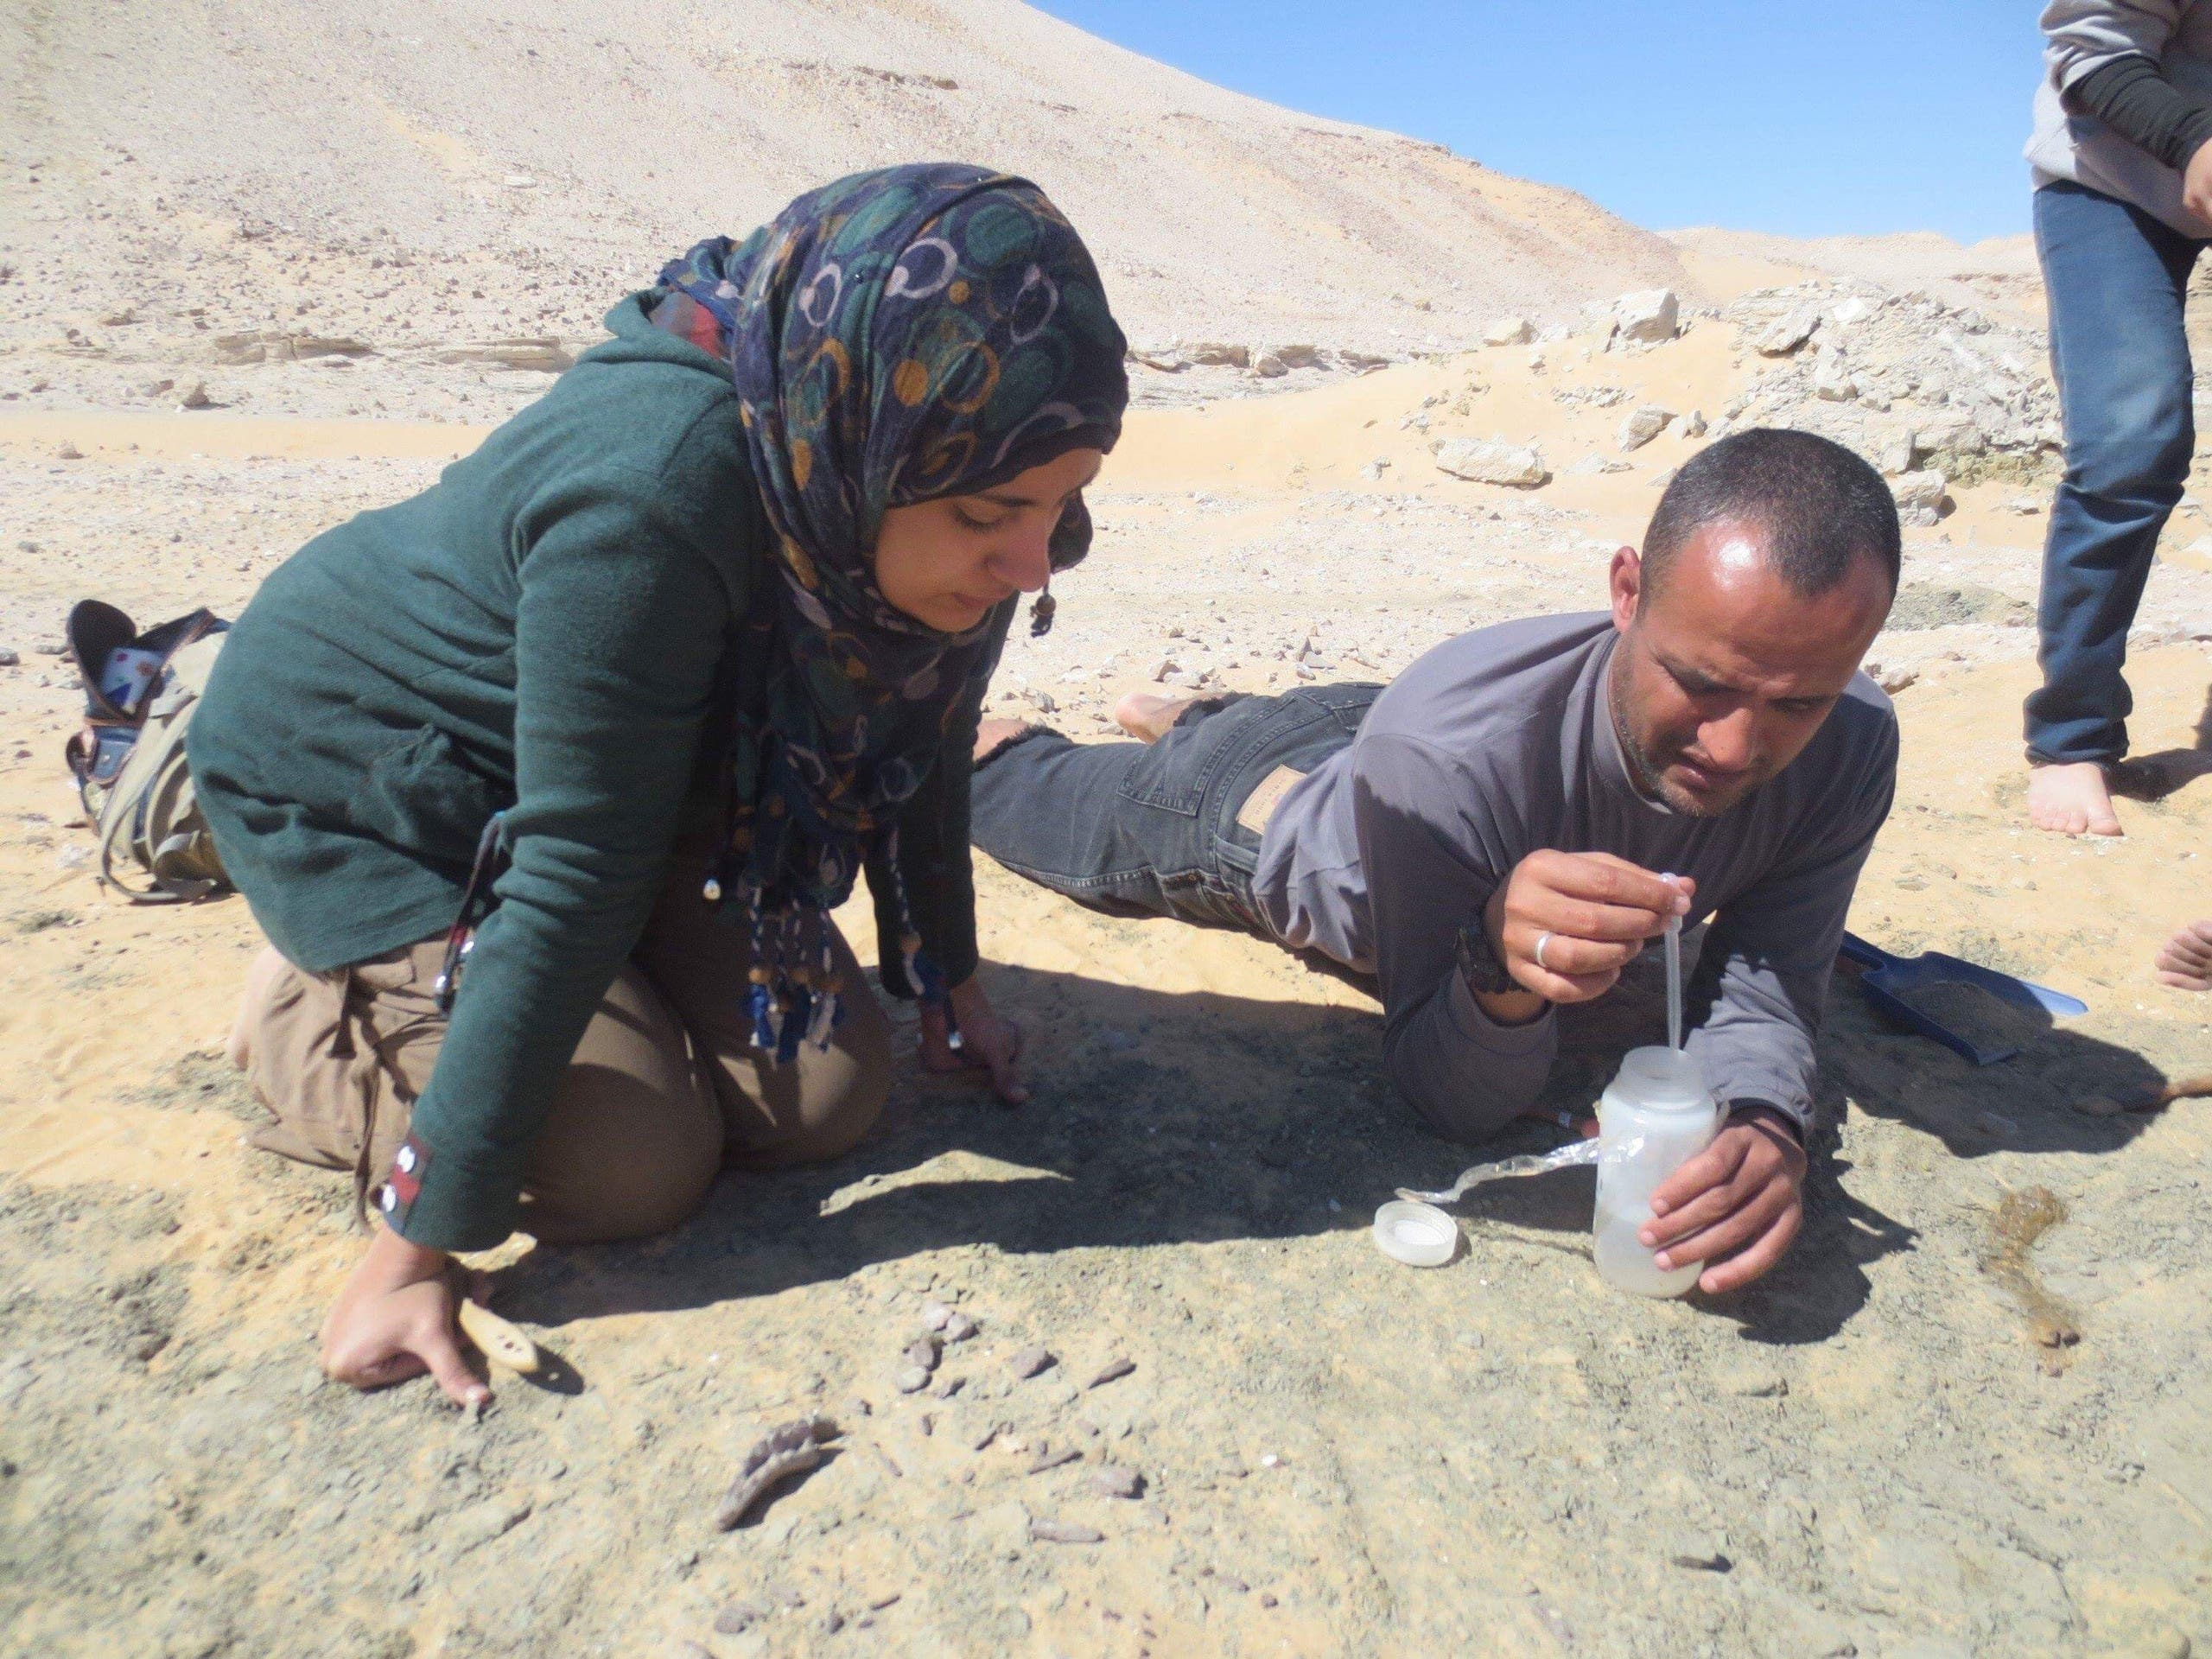 Researchers found a dinosaur fossil in an oasis in the western desert of Egypt. (Supplied)